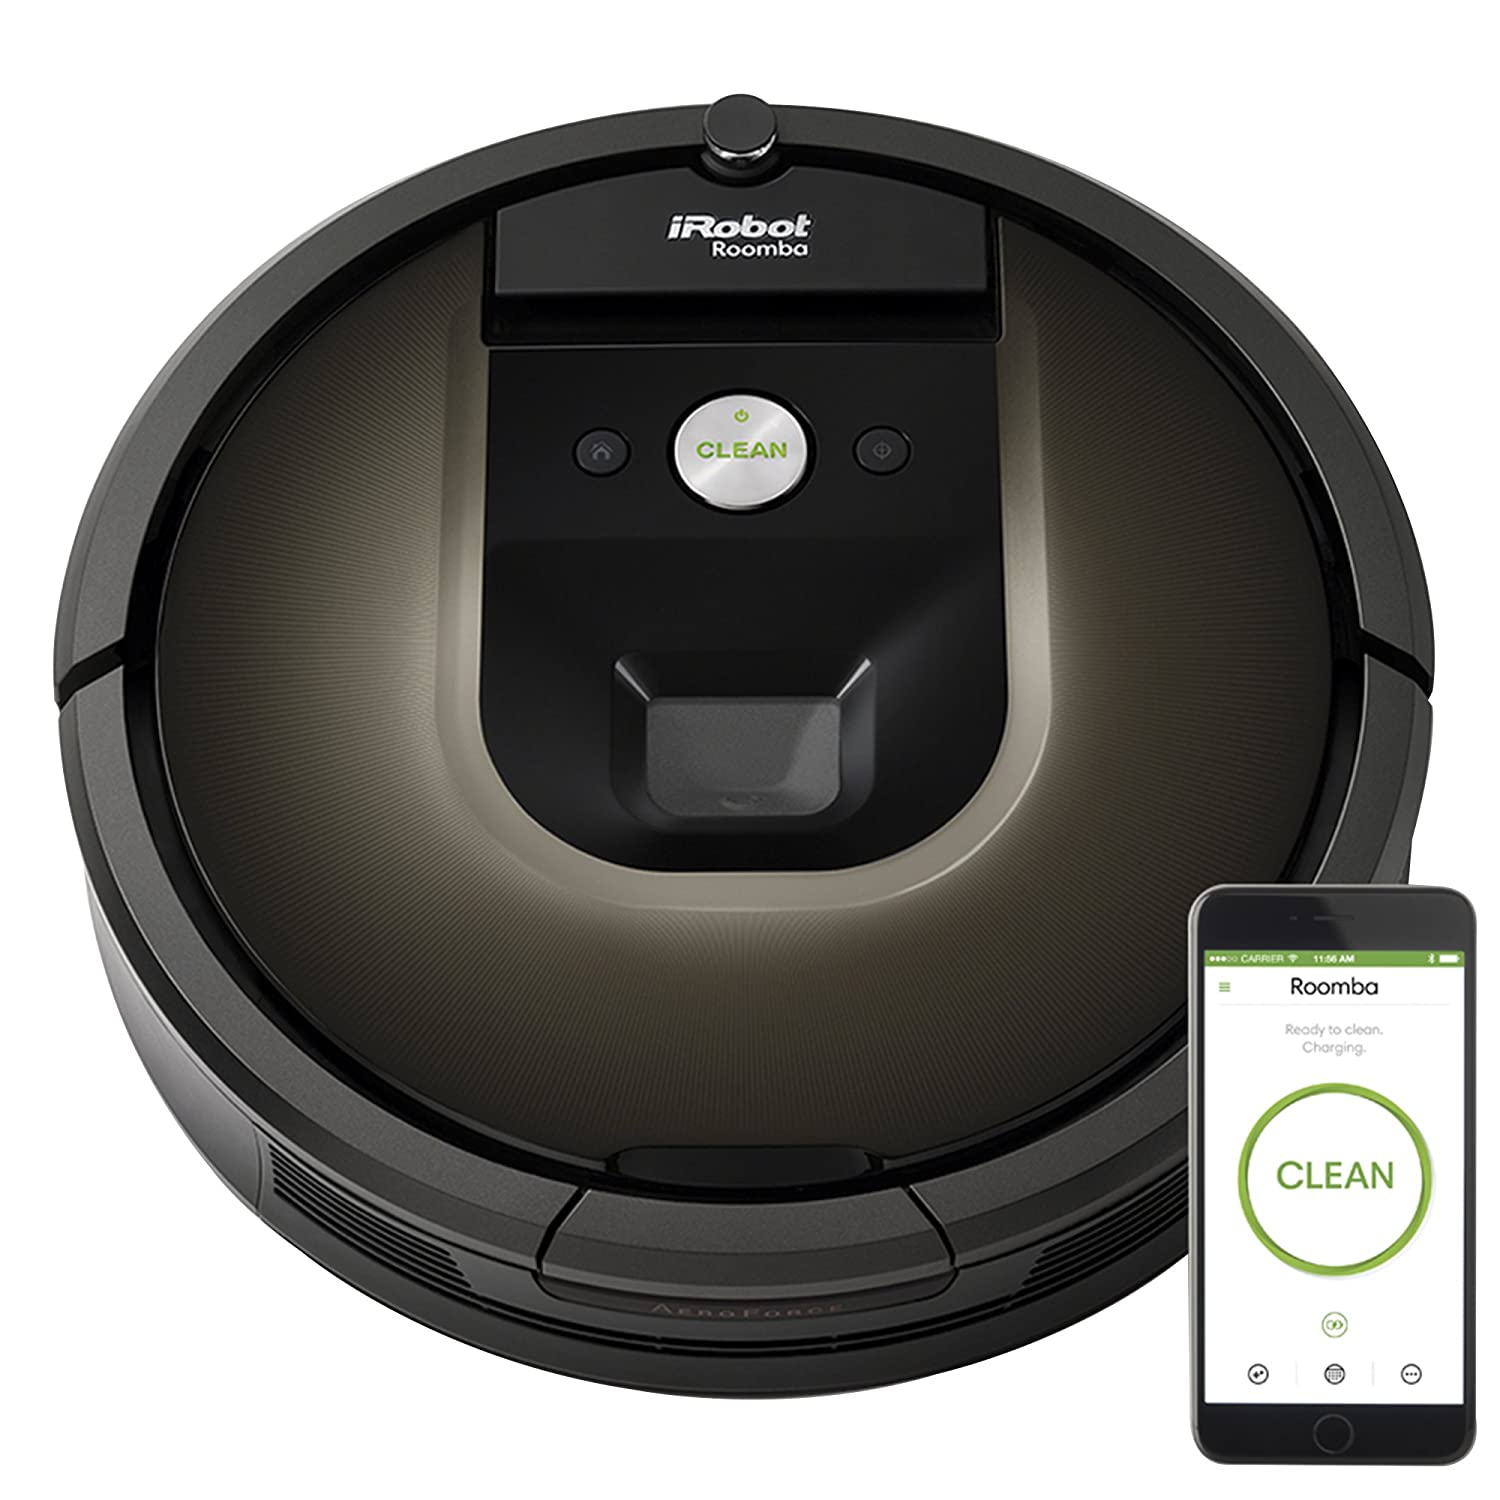 iRobot Roomba 980 Black Friday deal 2019